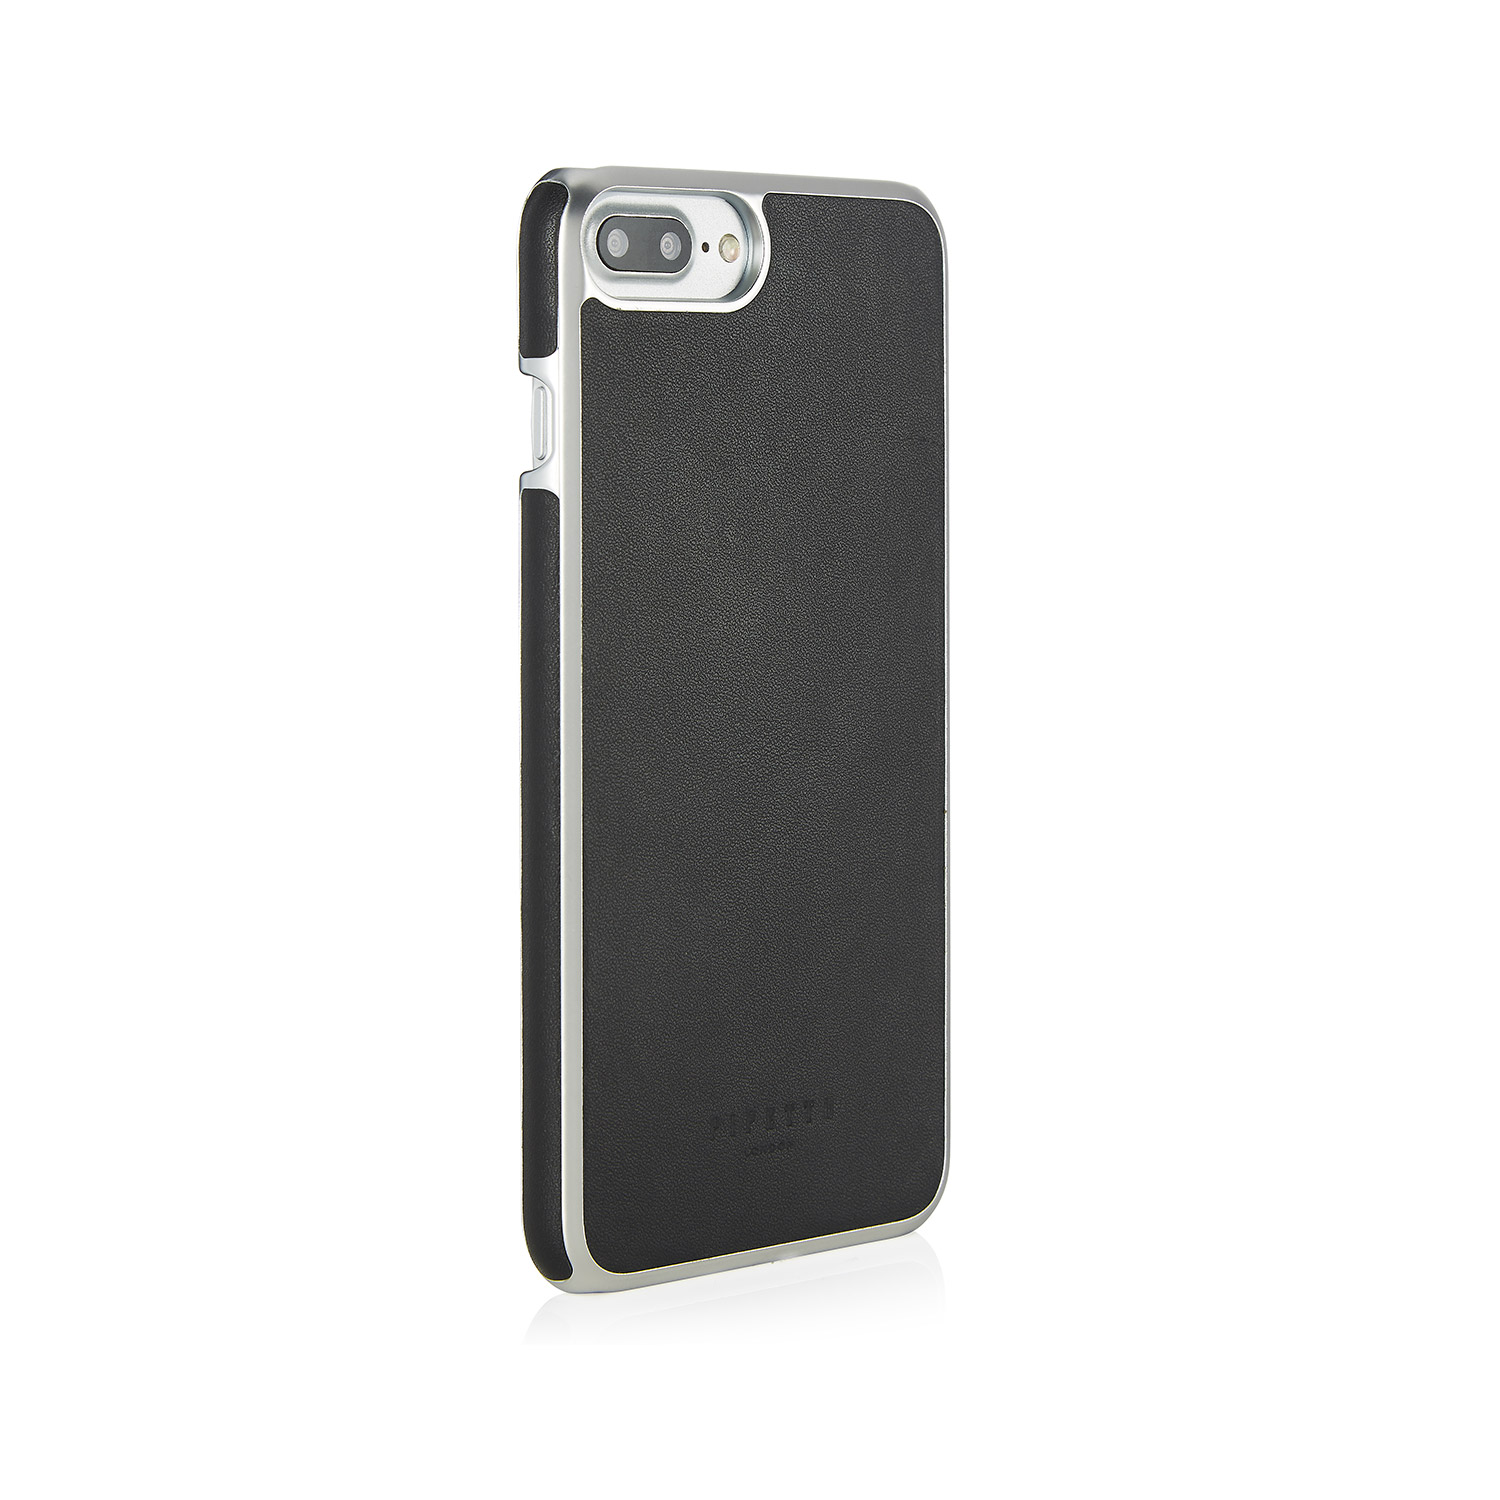 outlet store c828b 21fee iPhone 7 Plus Snap Case Magnetic - Black (Also Fits iPhone 6/6S Plus and  iPhone 8 Plus)